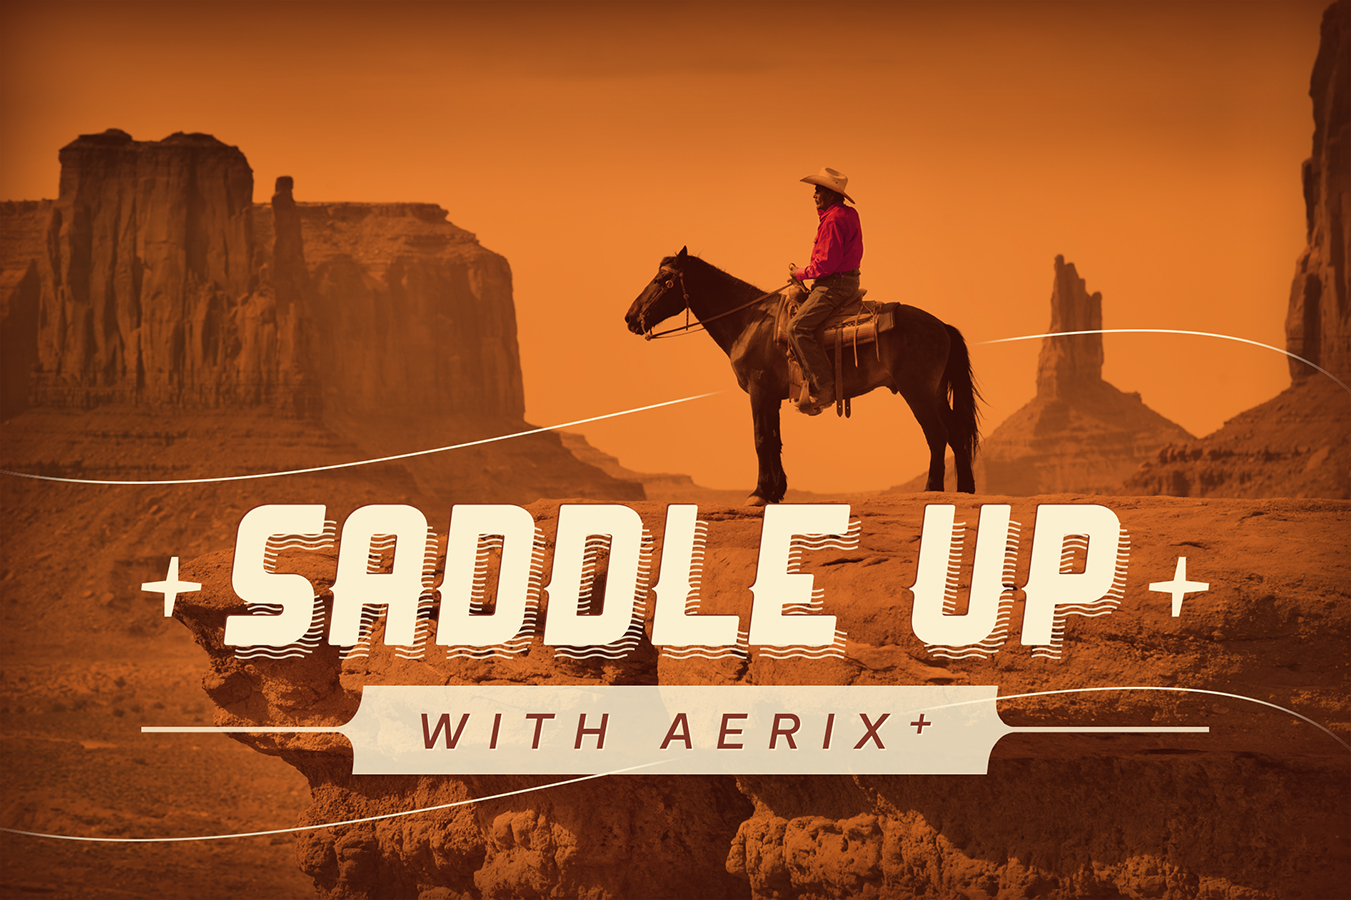 Saddle up with Aerix Hand dryers text on top of image of a cowboy overlooking a canyon